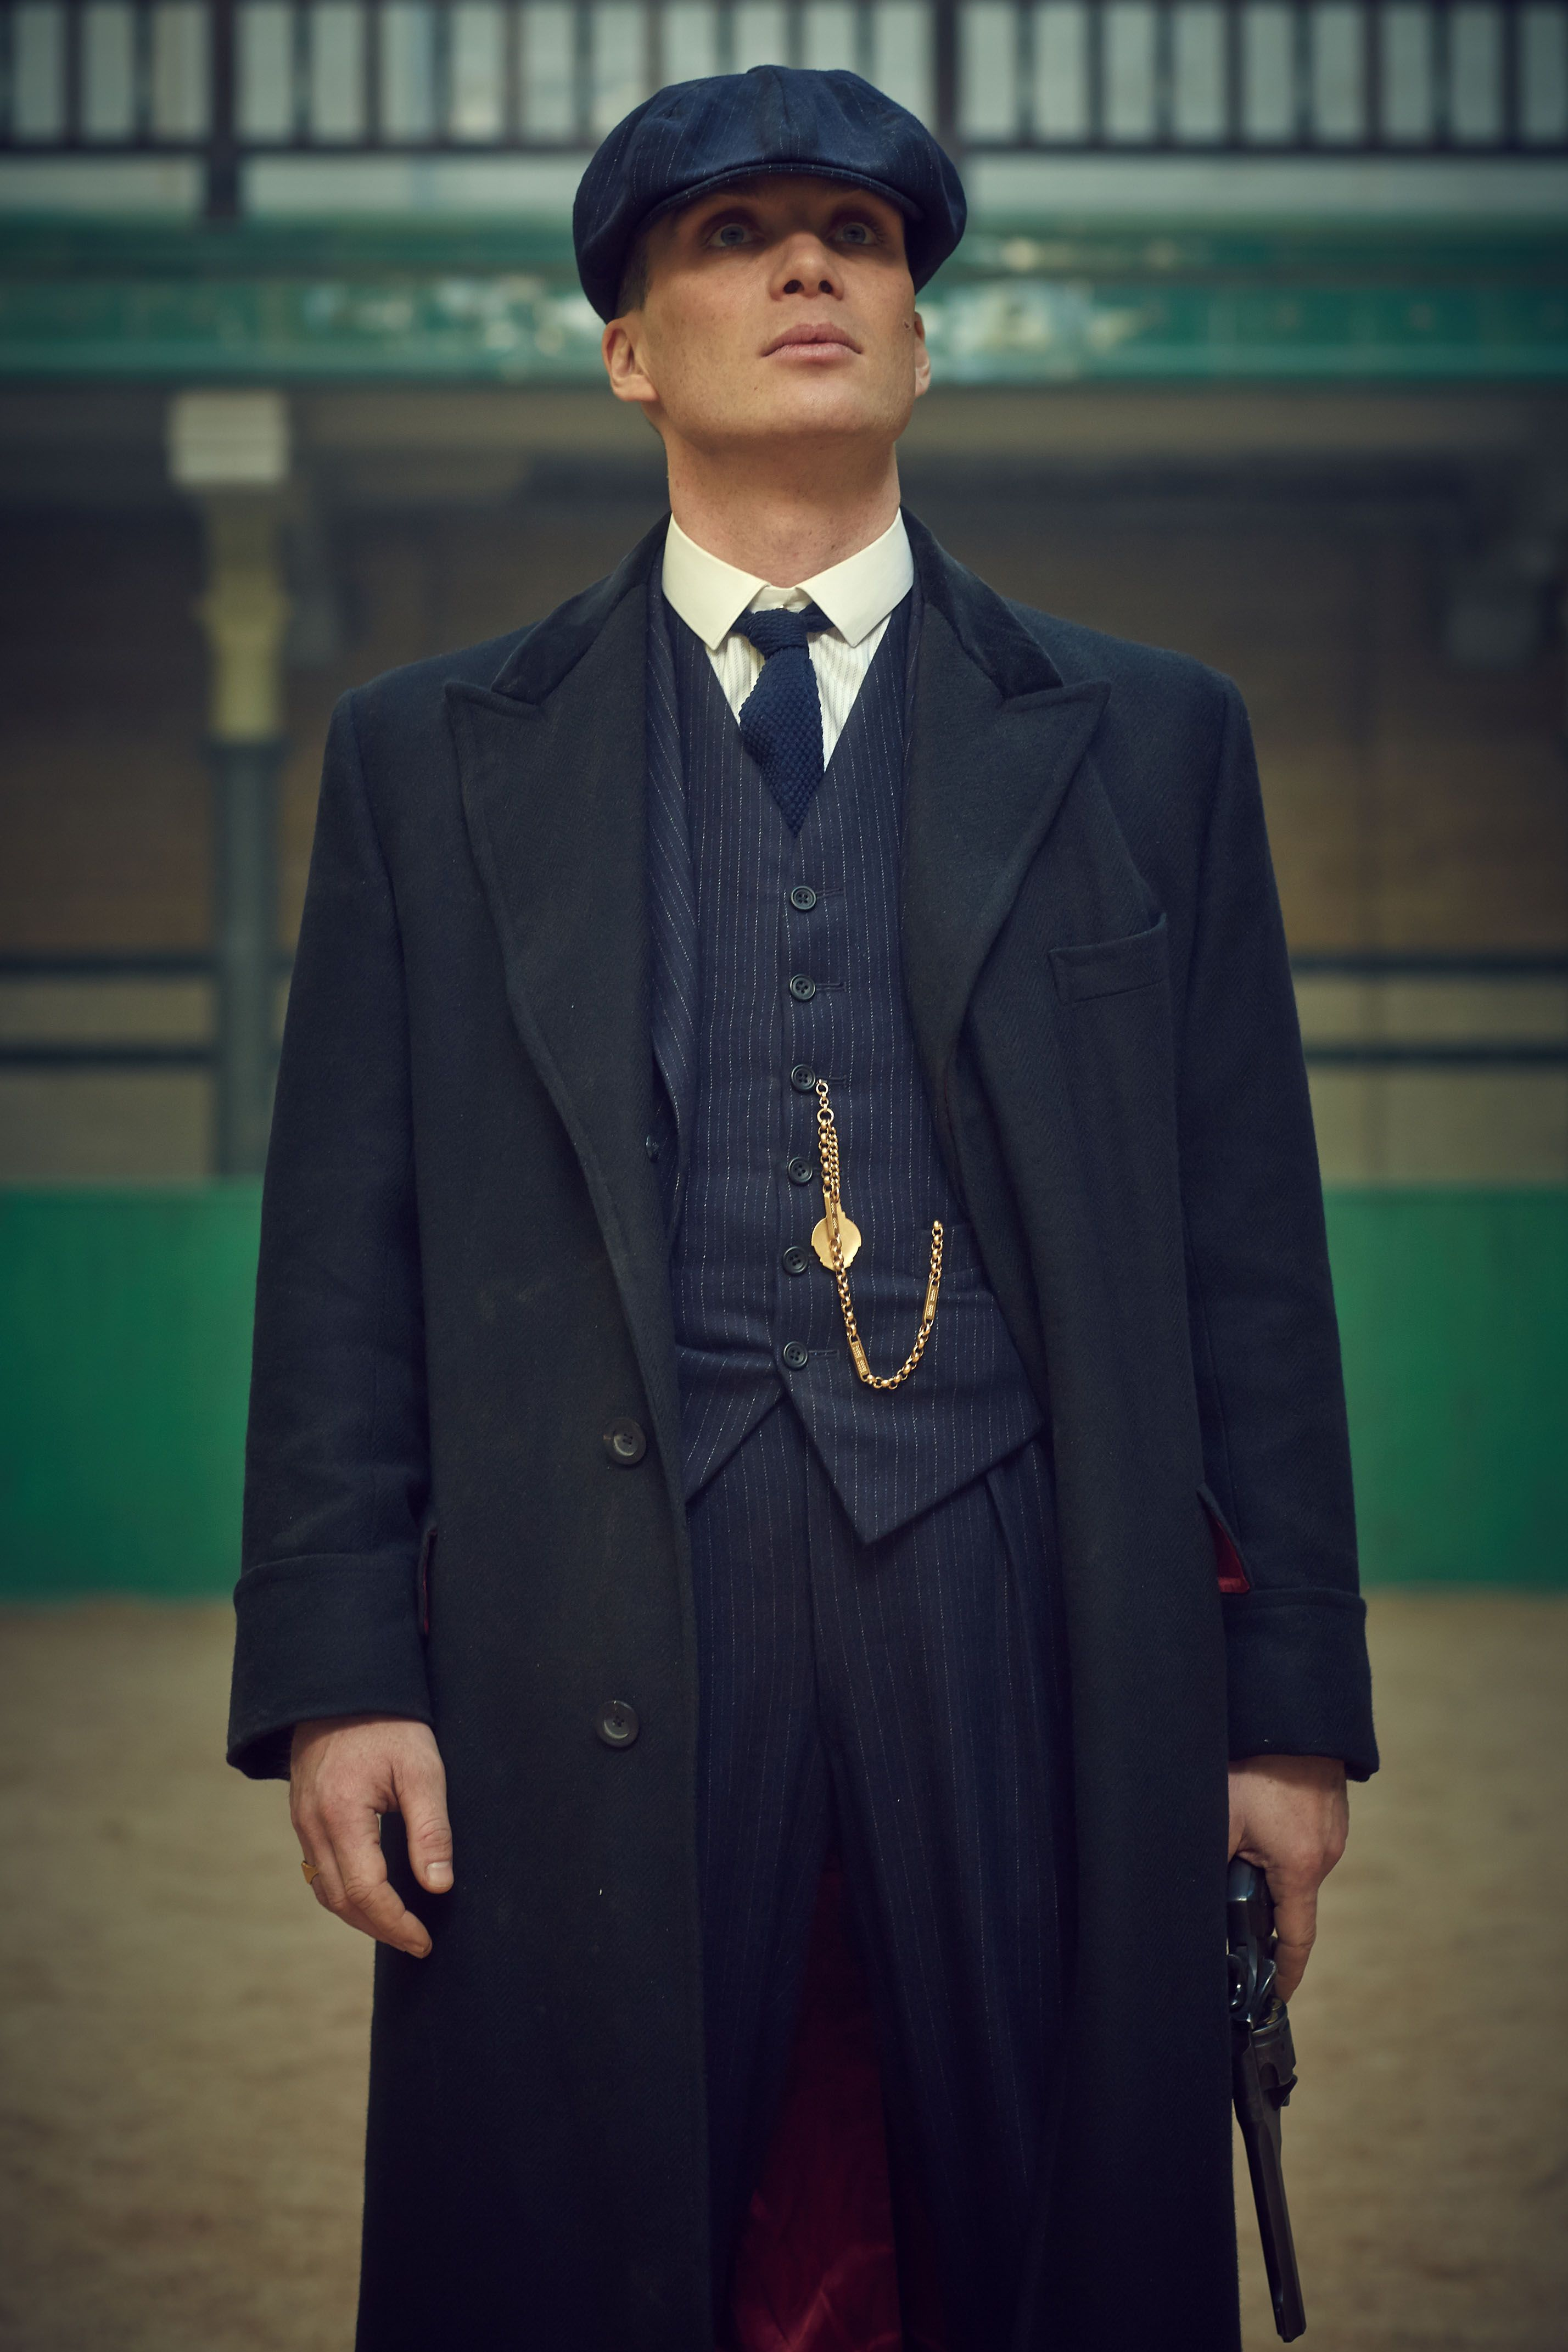 "Cillian Murphy in Peaky Blinders 2nd season: ""I'd probably have been wealthier if I had stayed with law, but pretty miserable doing it."" - Tommy Shelby"